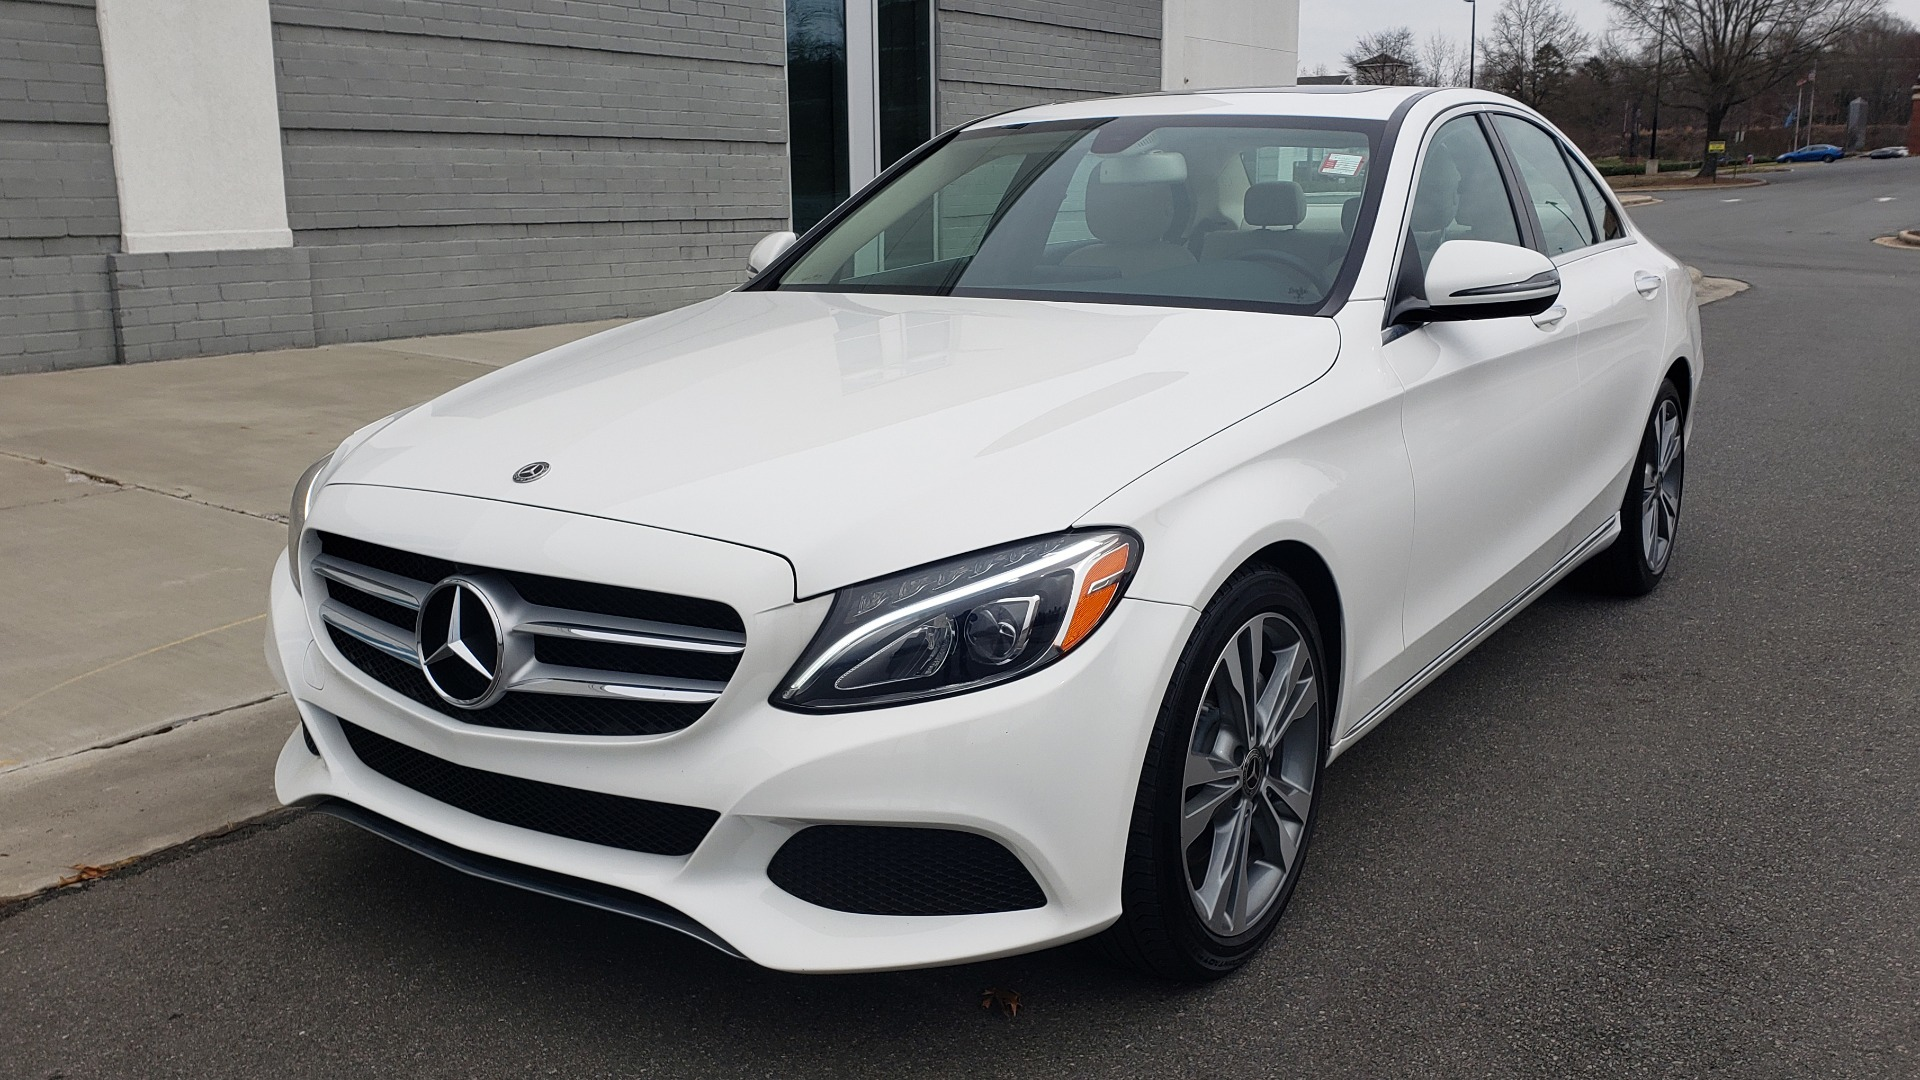 Used 2018 Mercedes-Benz C-CLASS C 300 PREMIUM / NAV / HTD STS / APPLY CARPLAY / REARVIEW for sale $26,695 at Formula Imports in Charlotte NC 28227 1